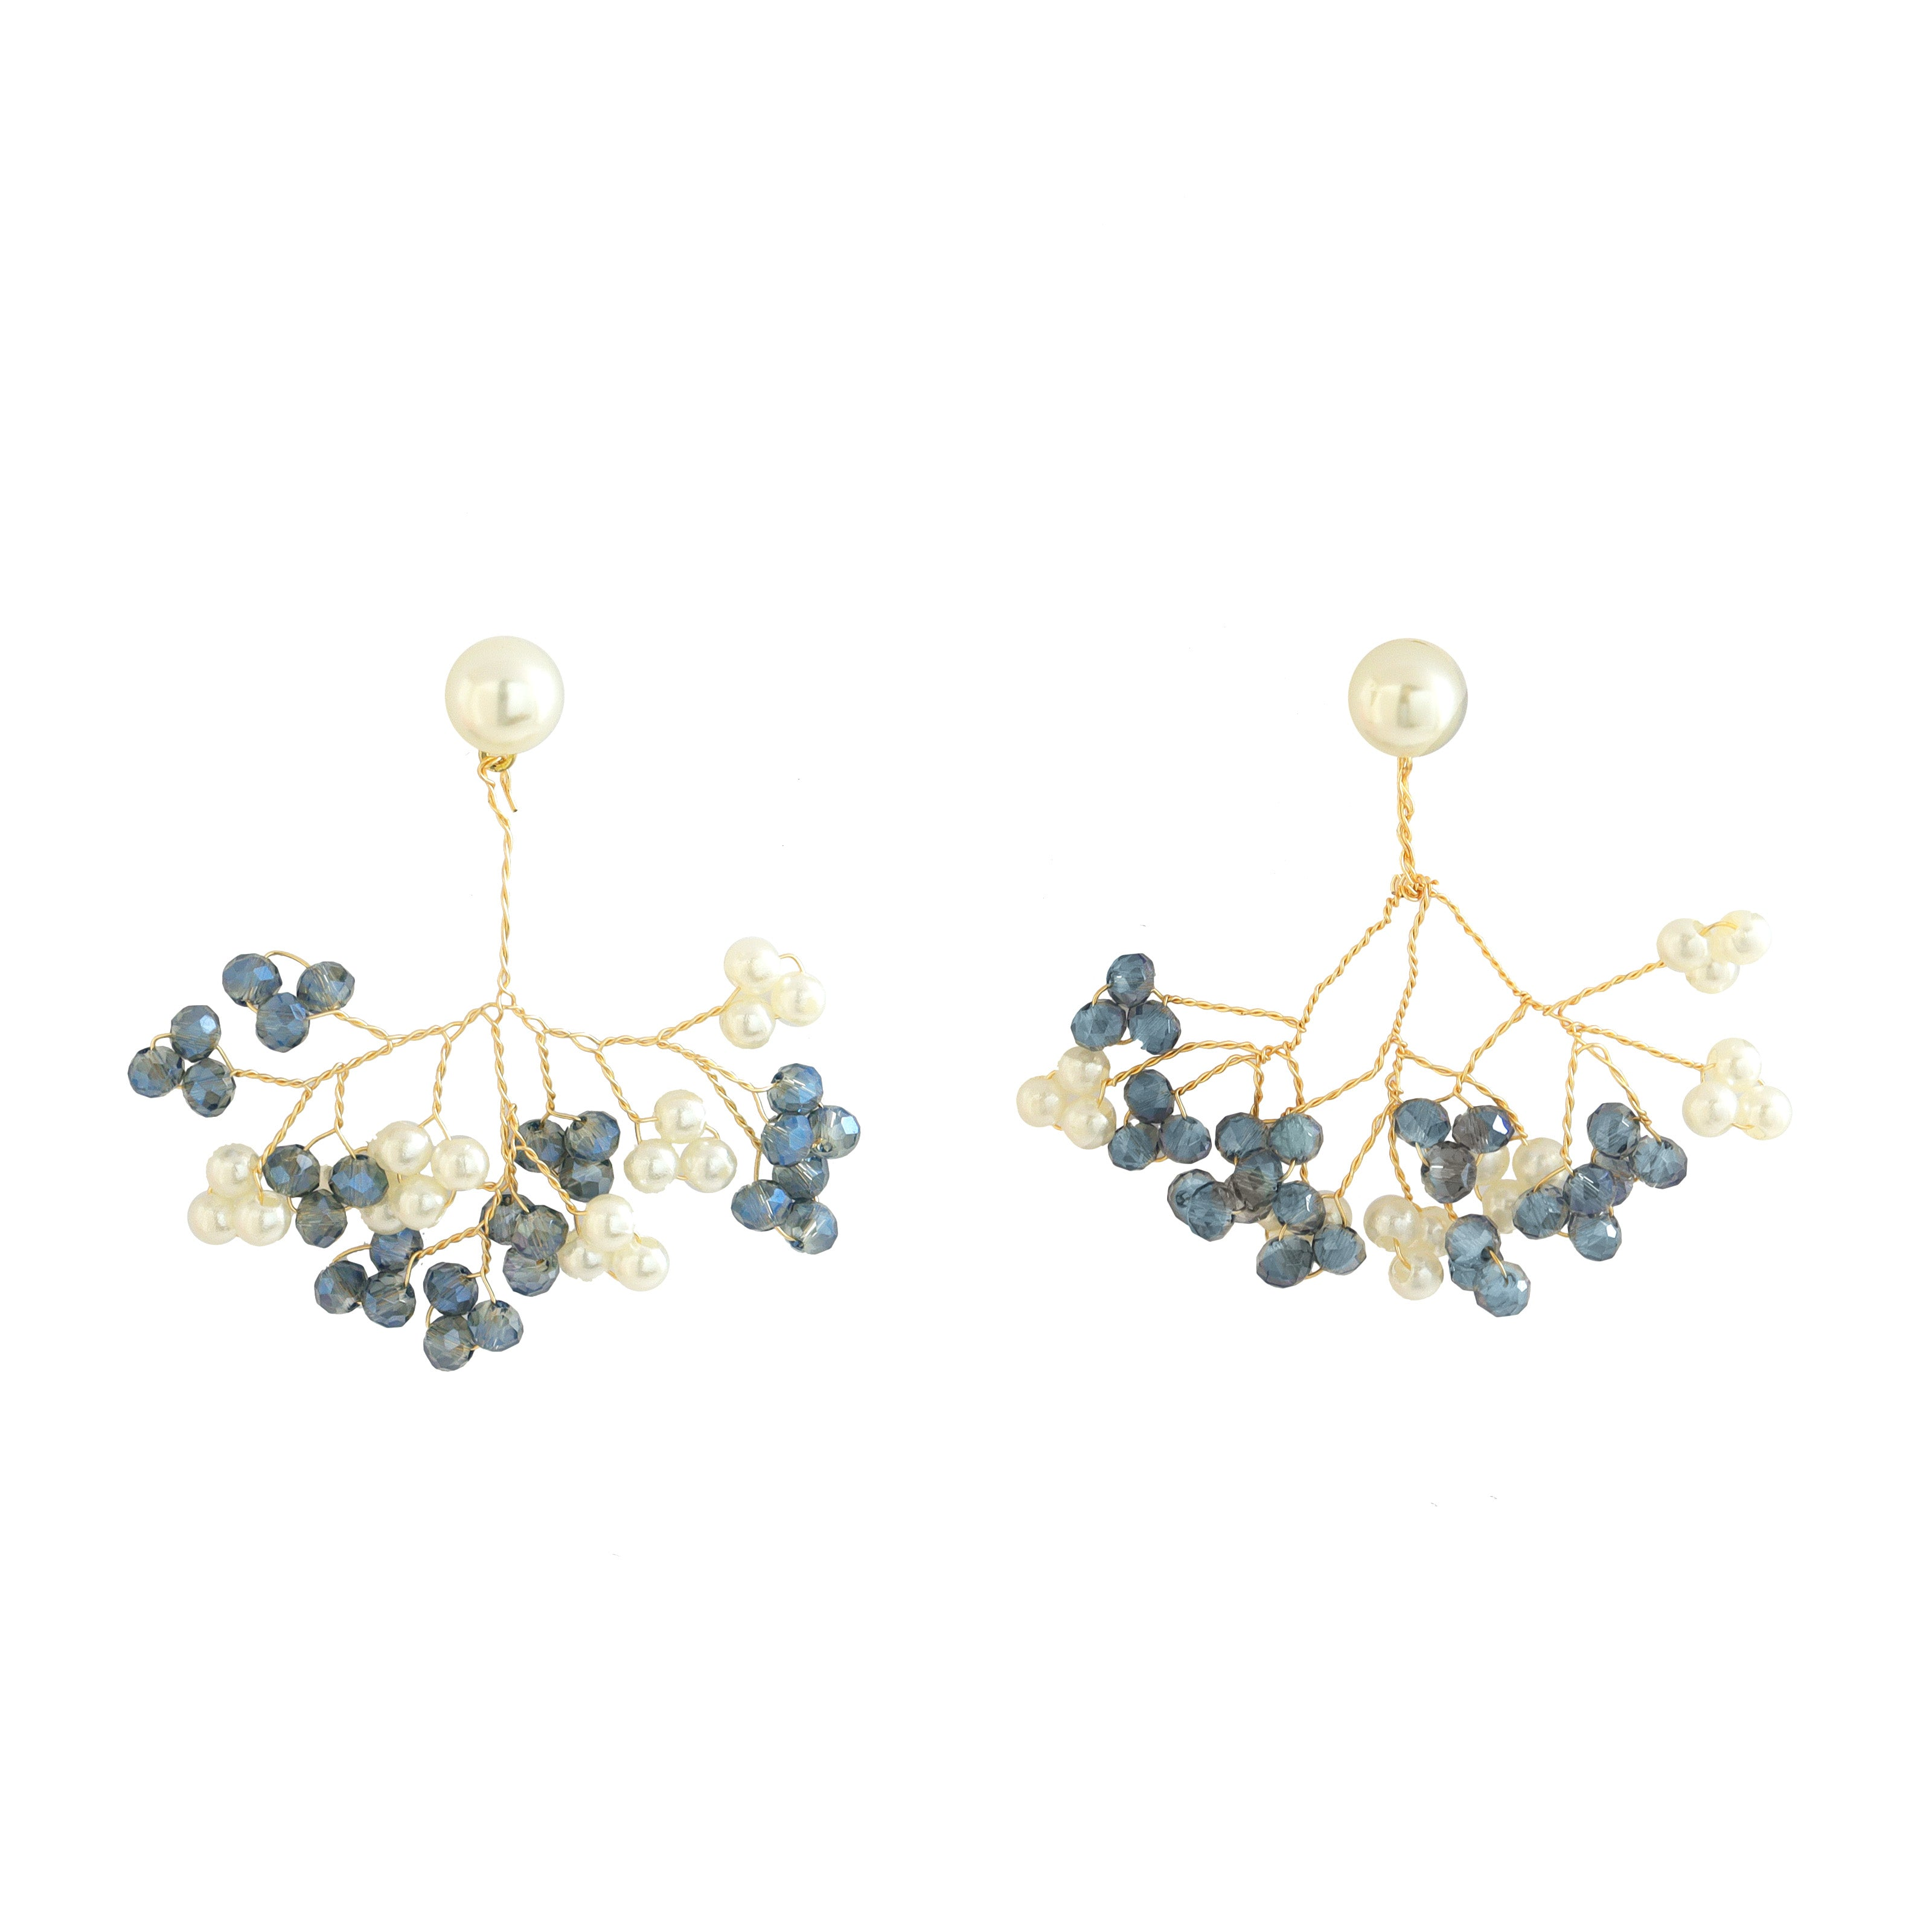 Shiny Branches Earrings